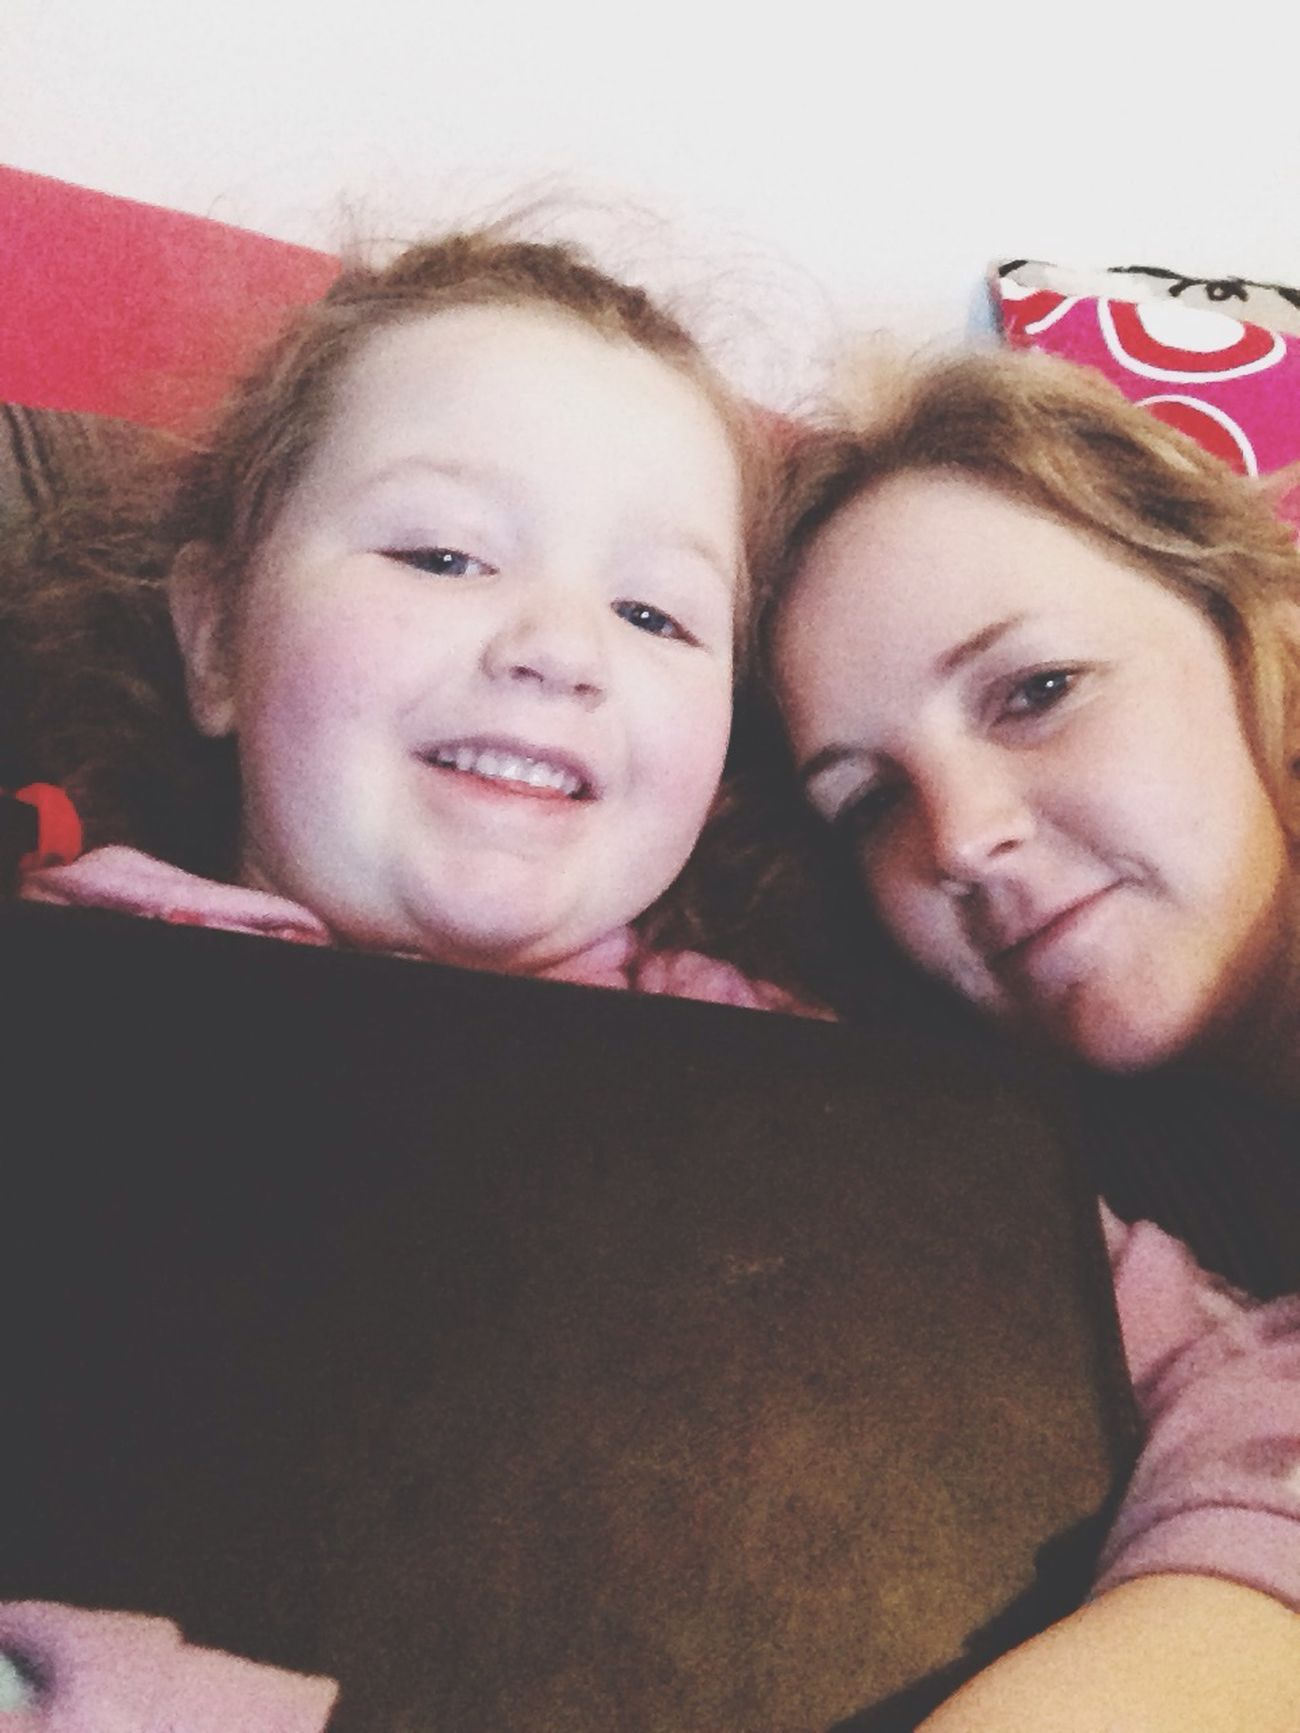 Chilling with Gracey!